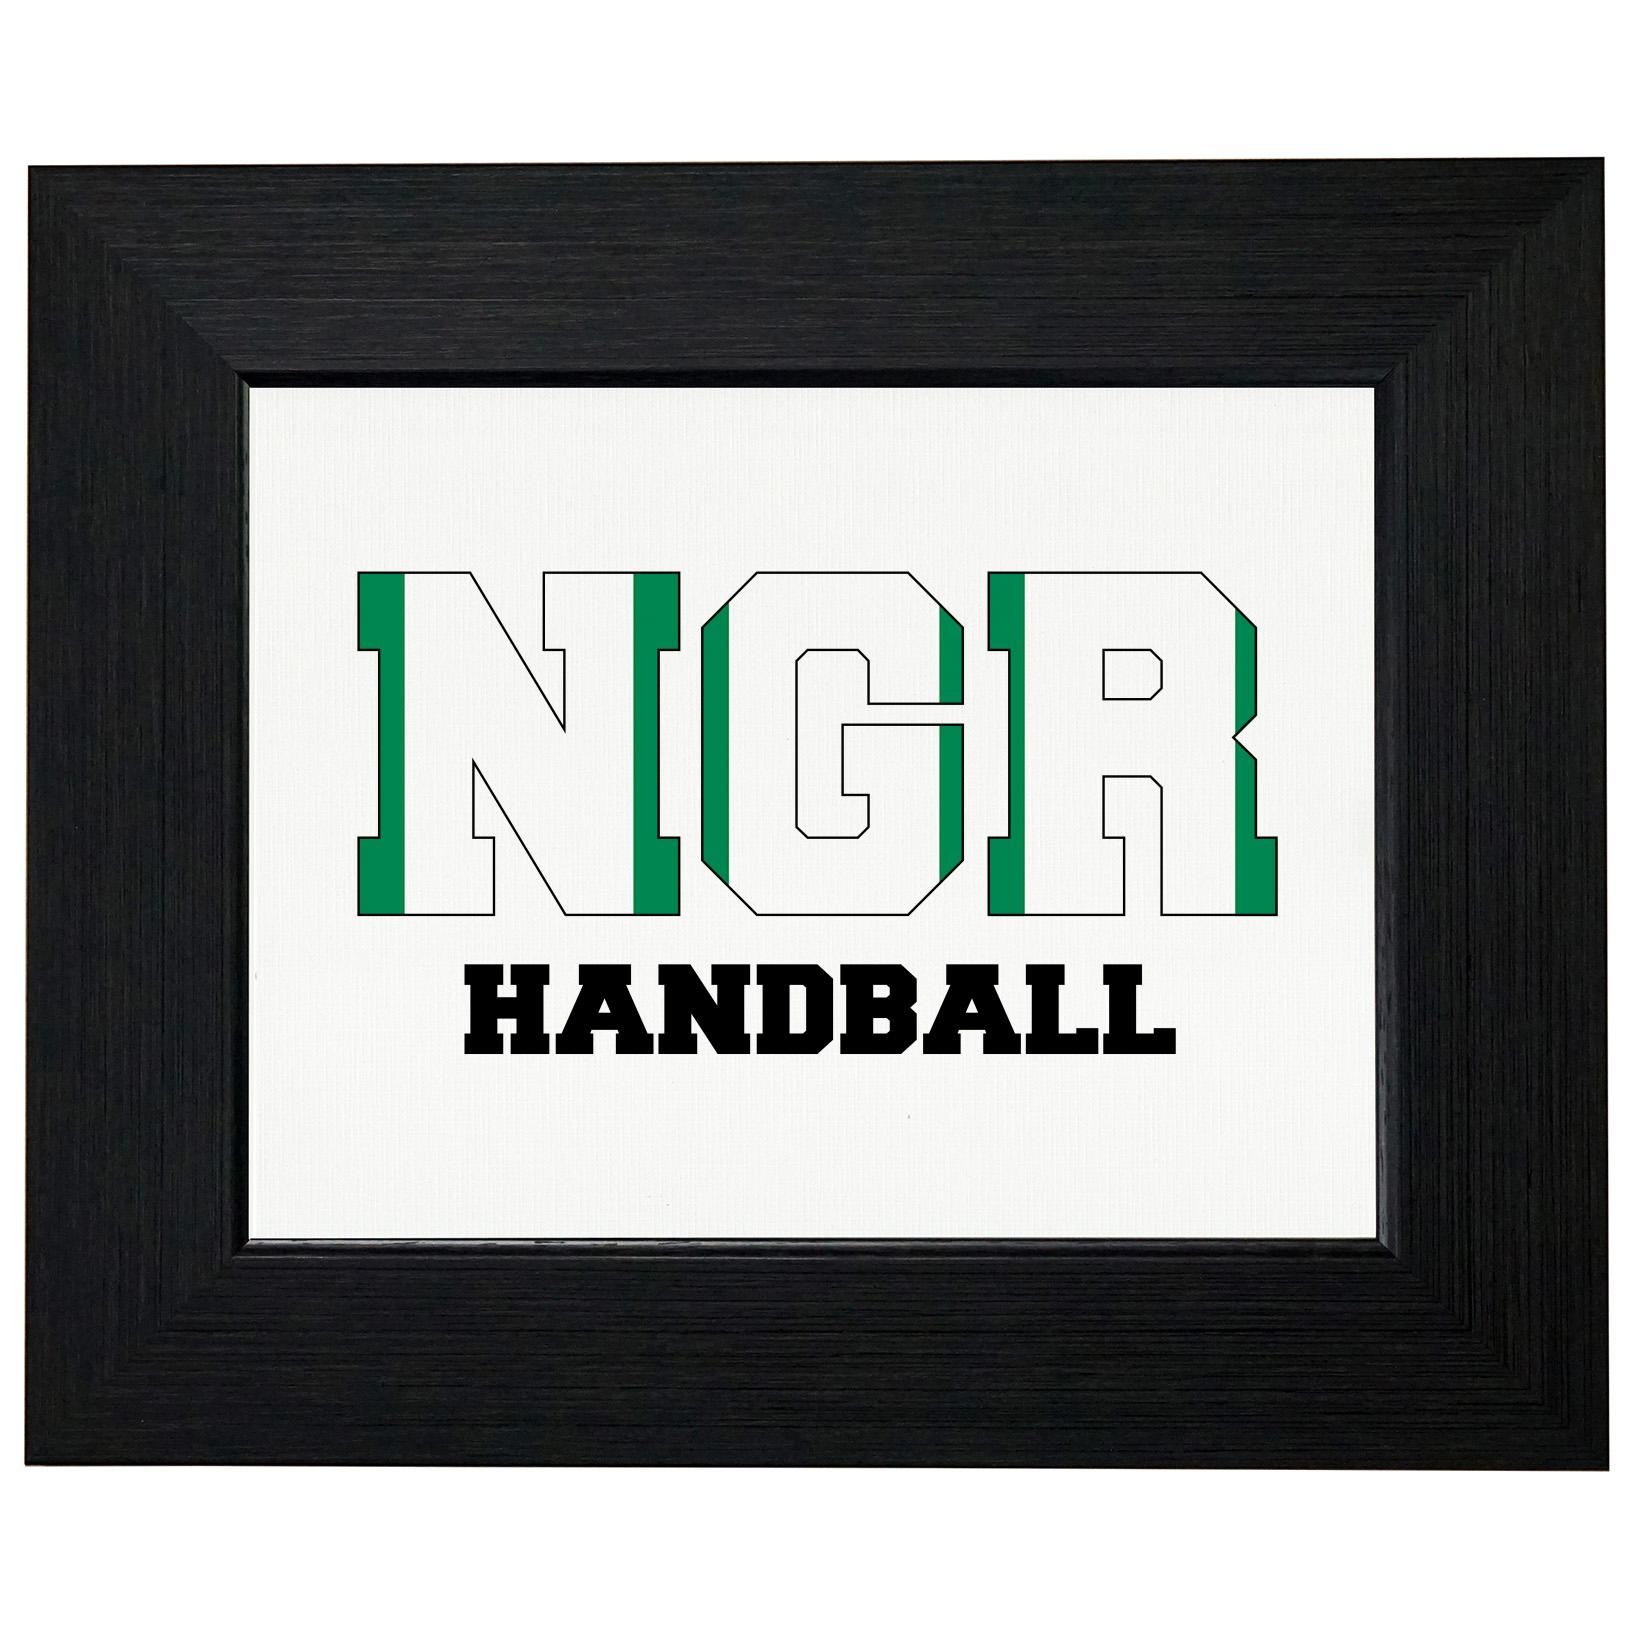 Nigeria Handball Olympic Games Rio Flag Framed Print Poster Wall or Desk Mount Options by Royal Prints